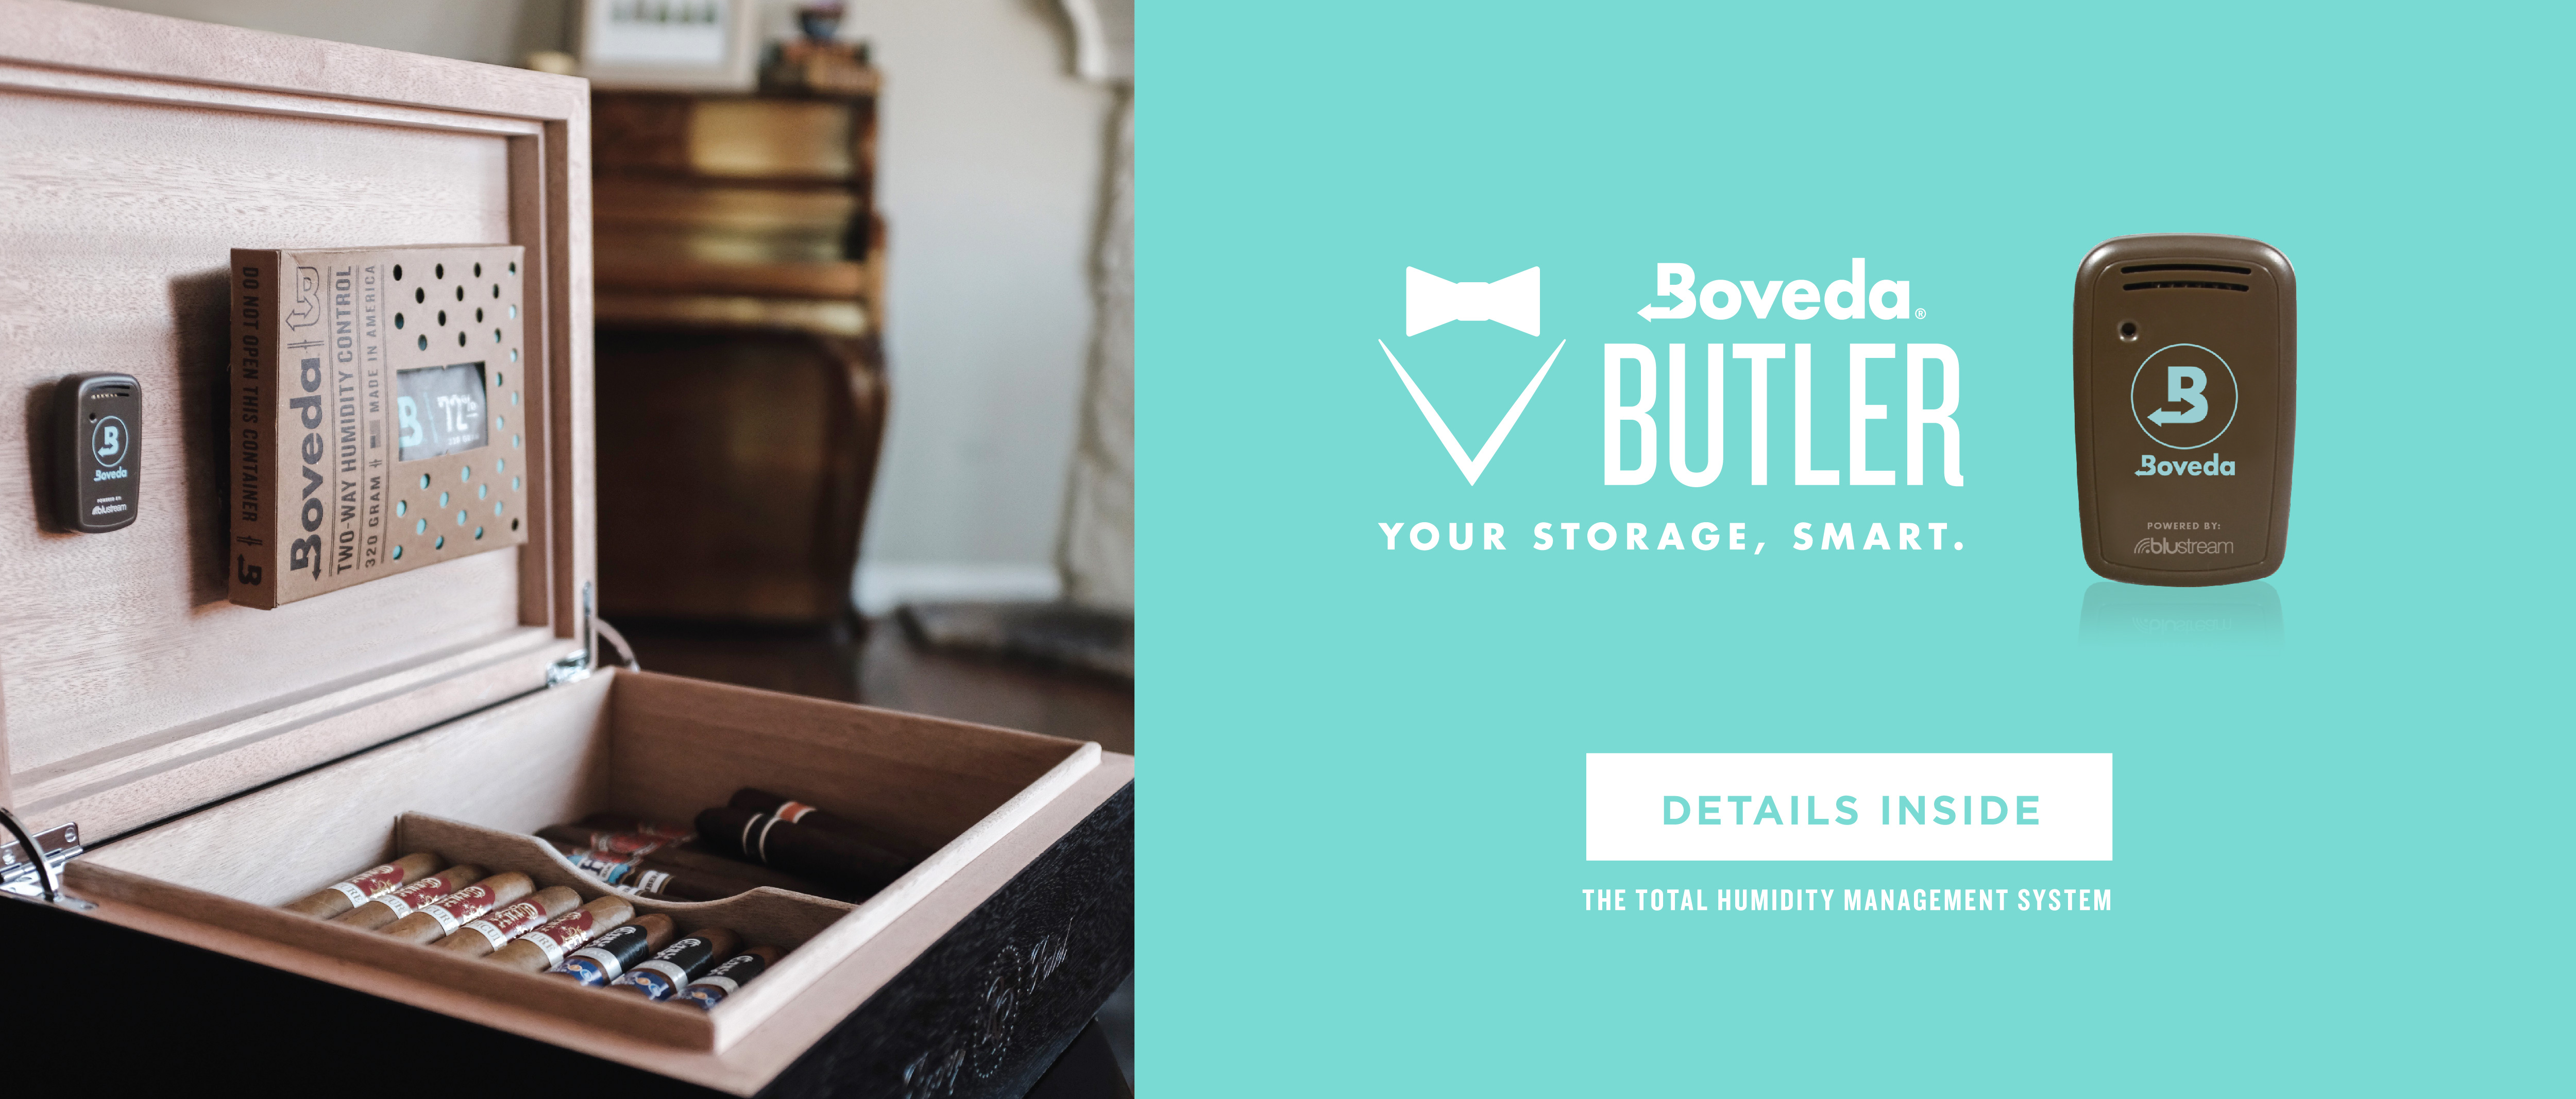 The Boveda Butler cigar monitor.